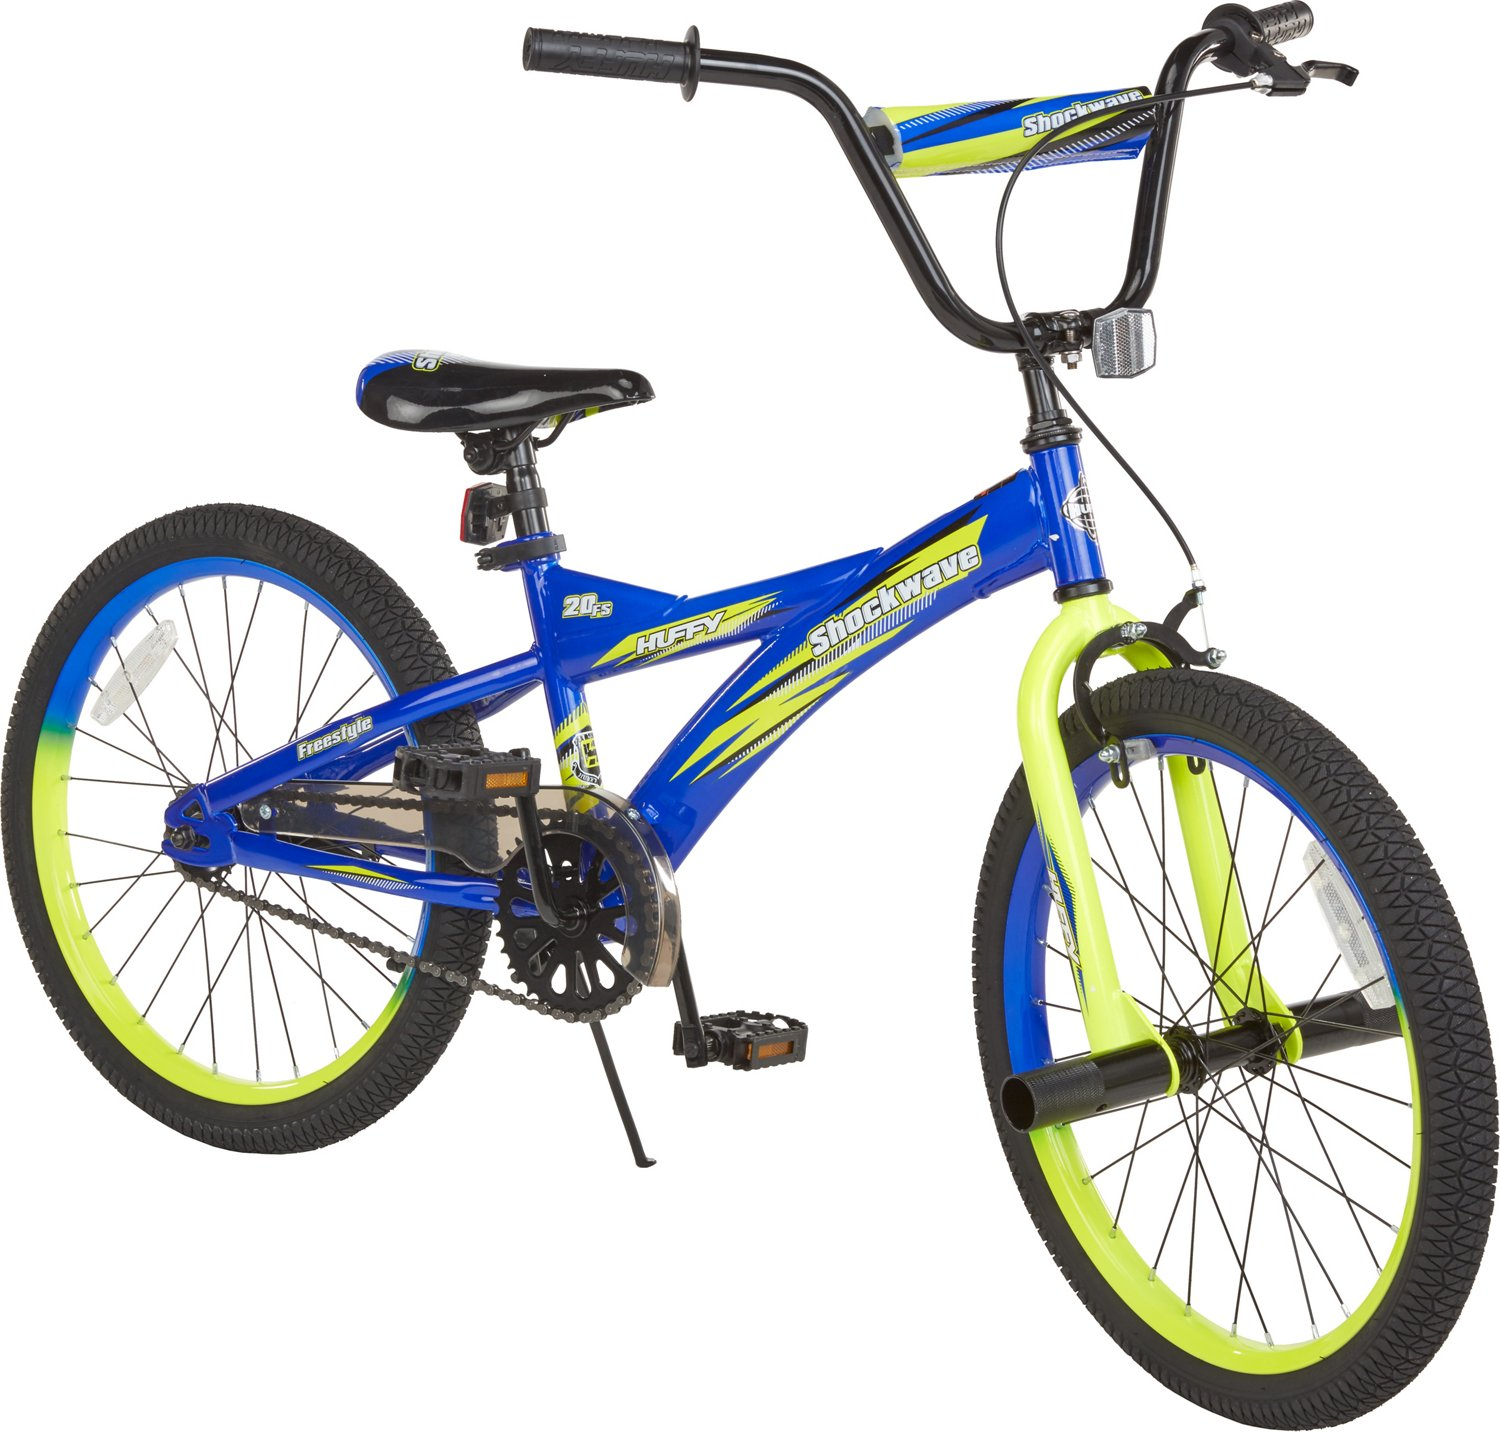 76c8115fcfa Display product reviews for Huffy Boys' Shockwave 20